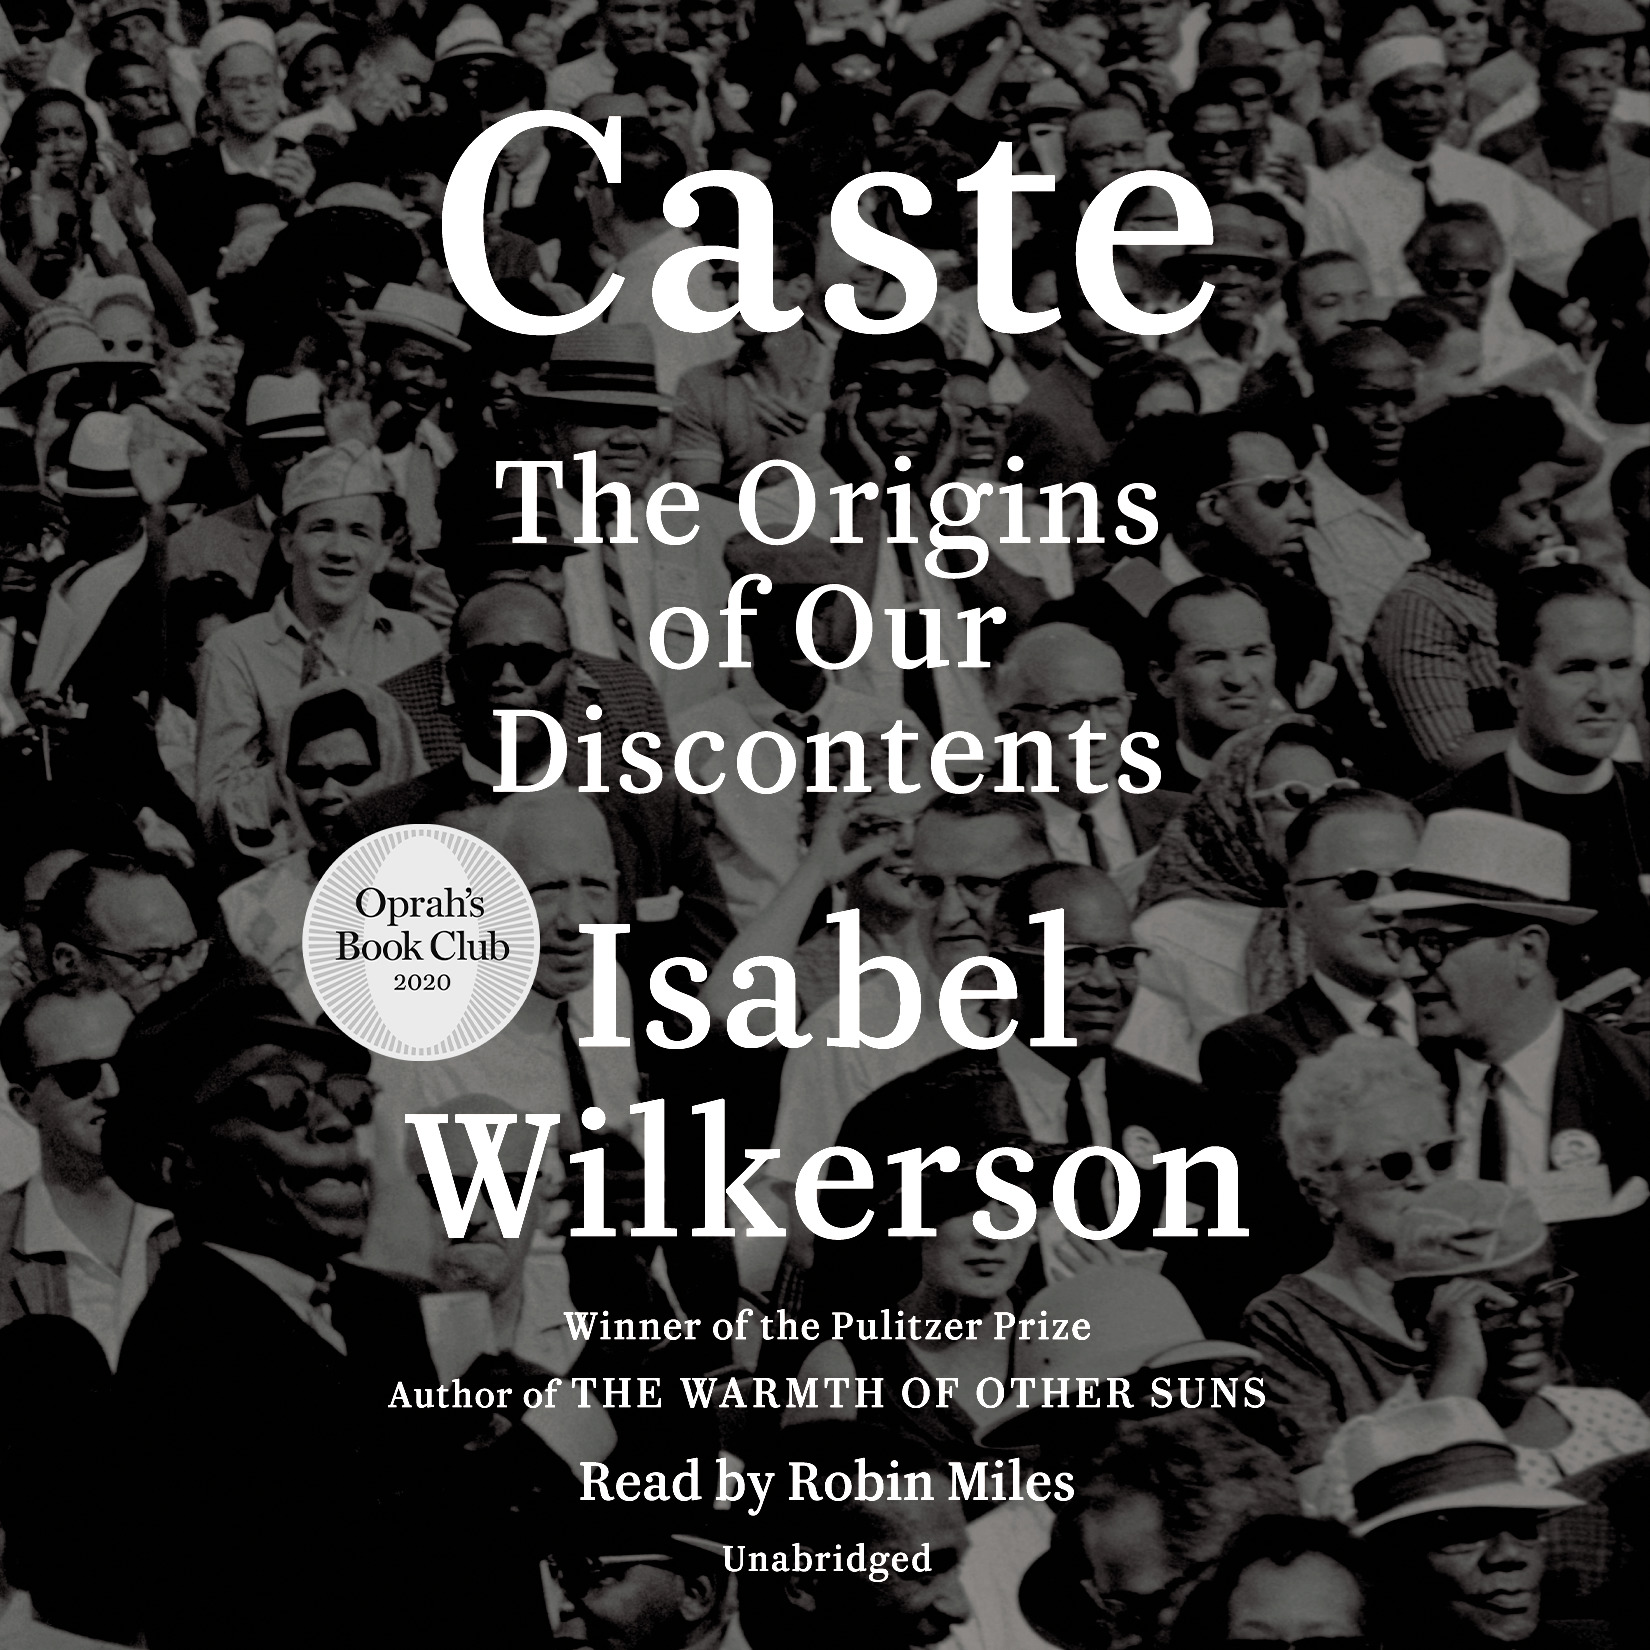 image for Caste: The Origins of Our Discontents